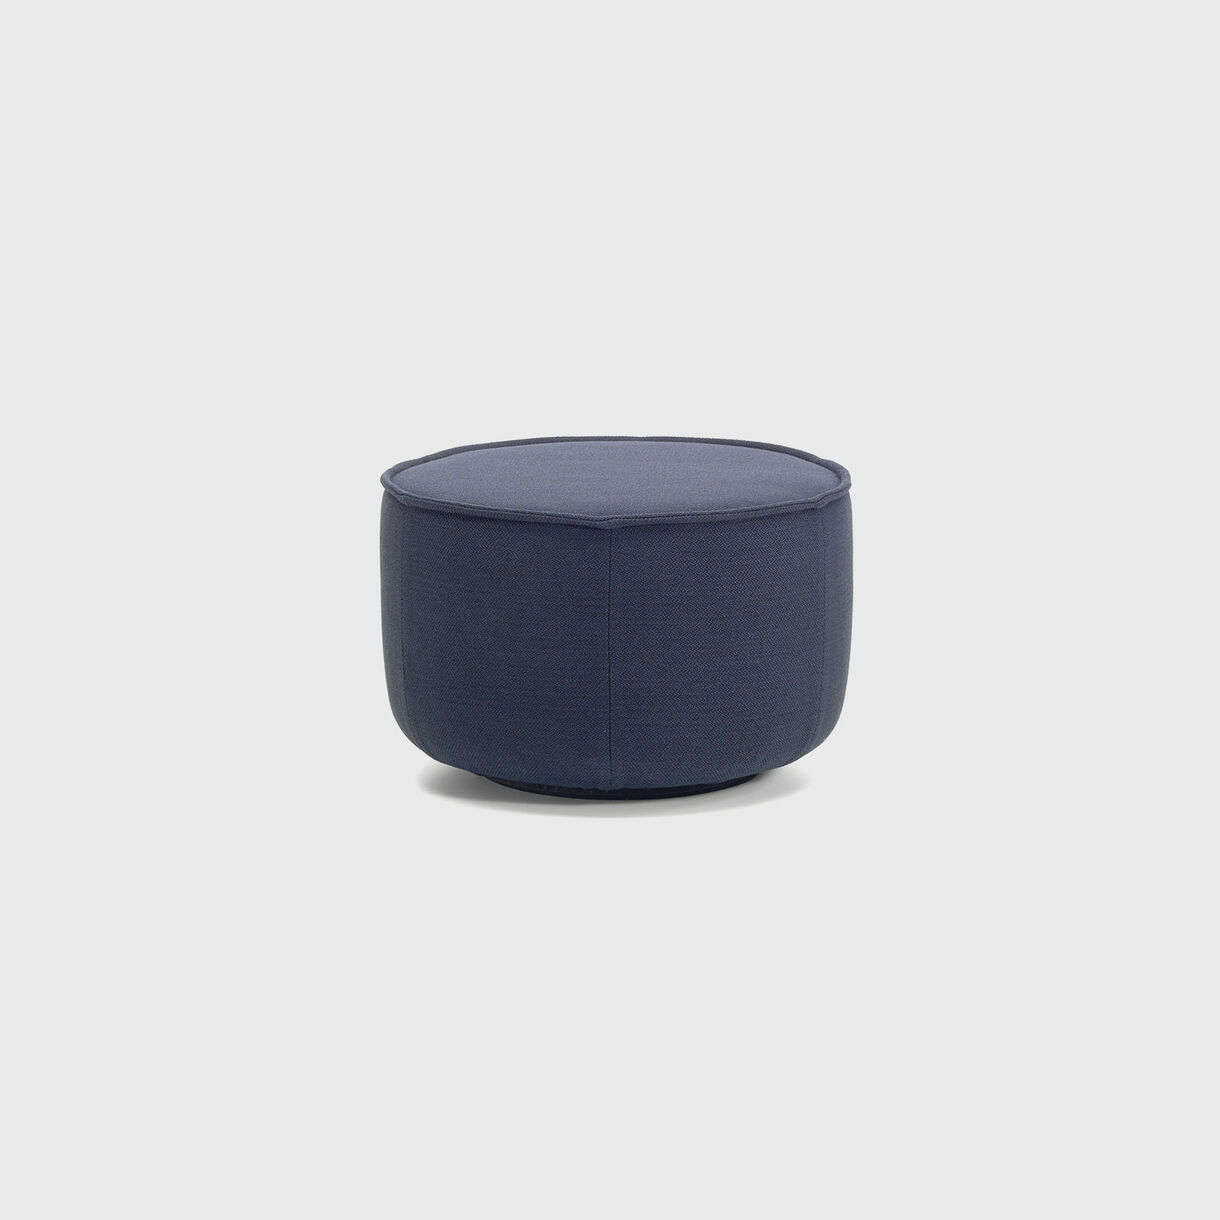 Mariposa Ottoman, Medium, Steel Blue